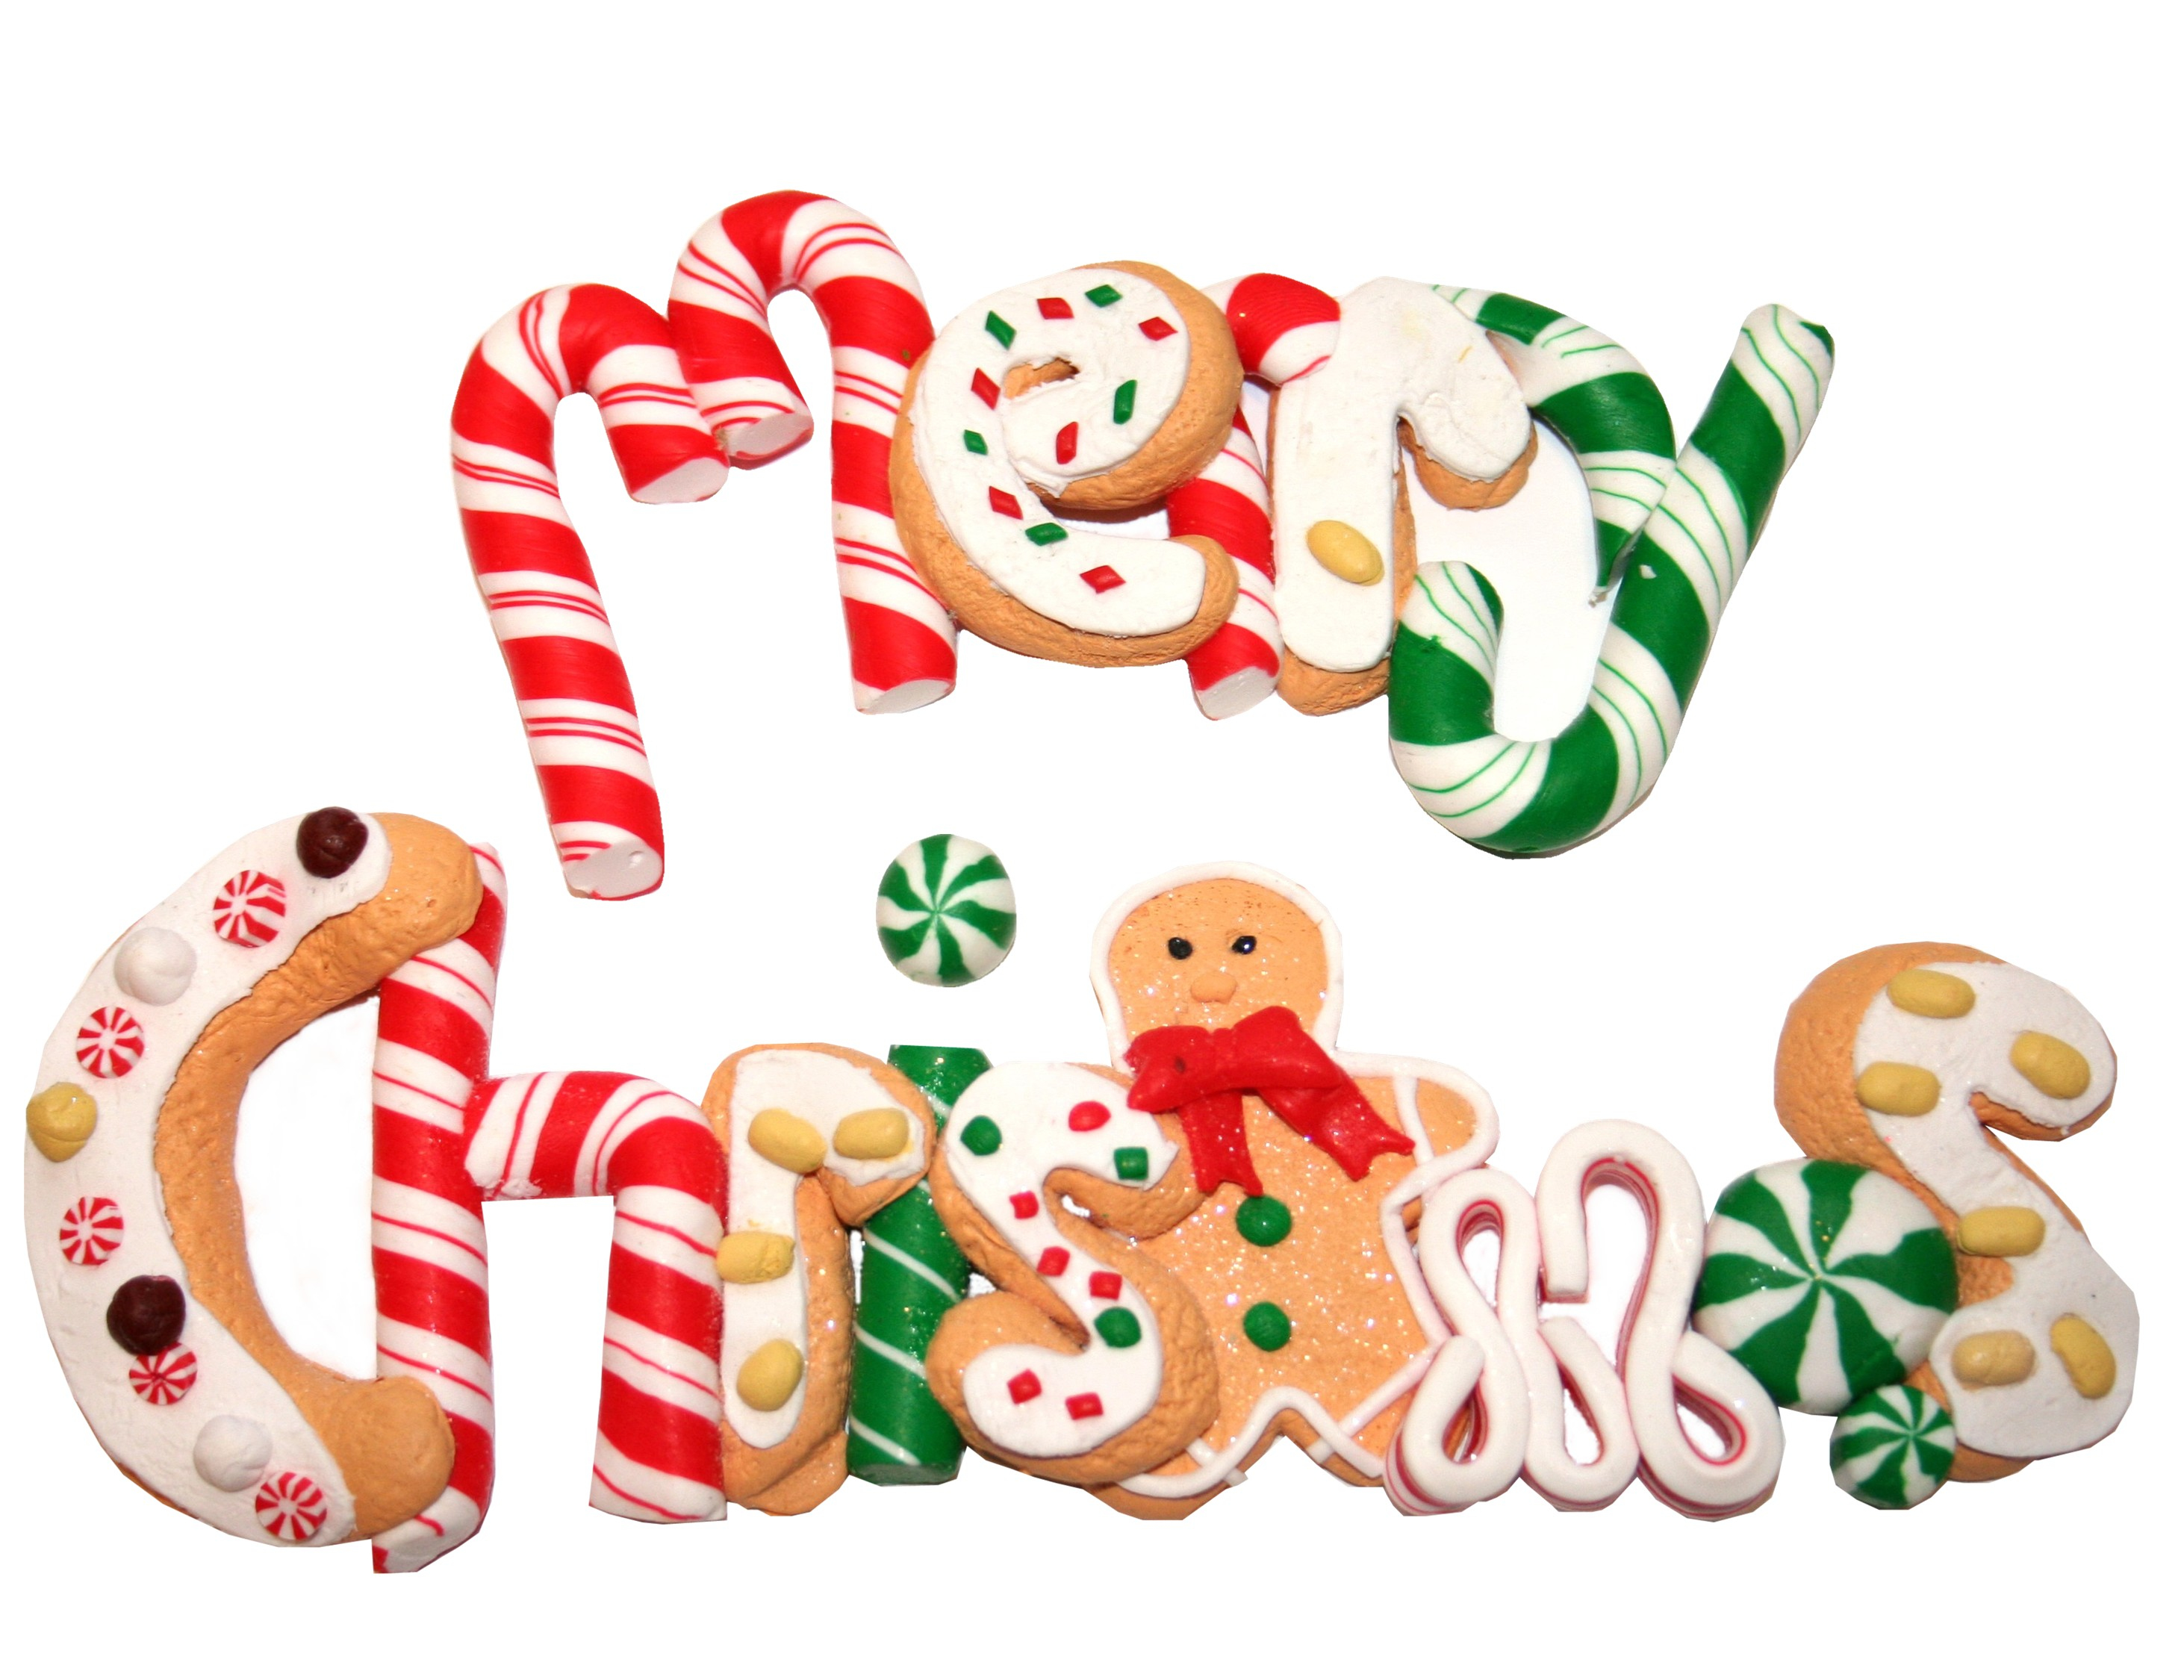 Gingerbread clipart merry christmas. Clip art free download